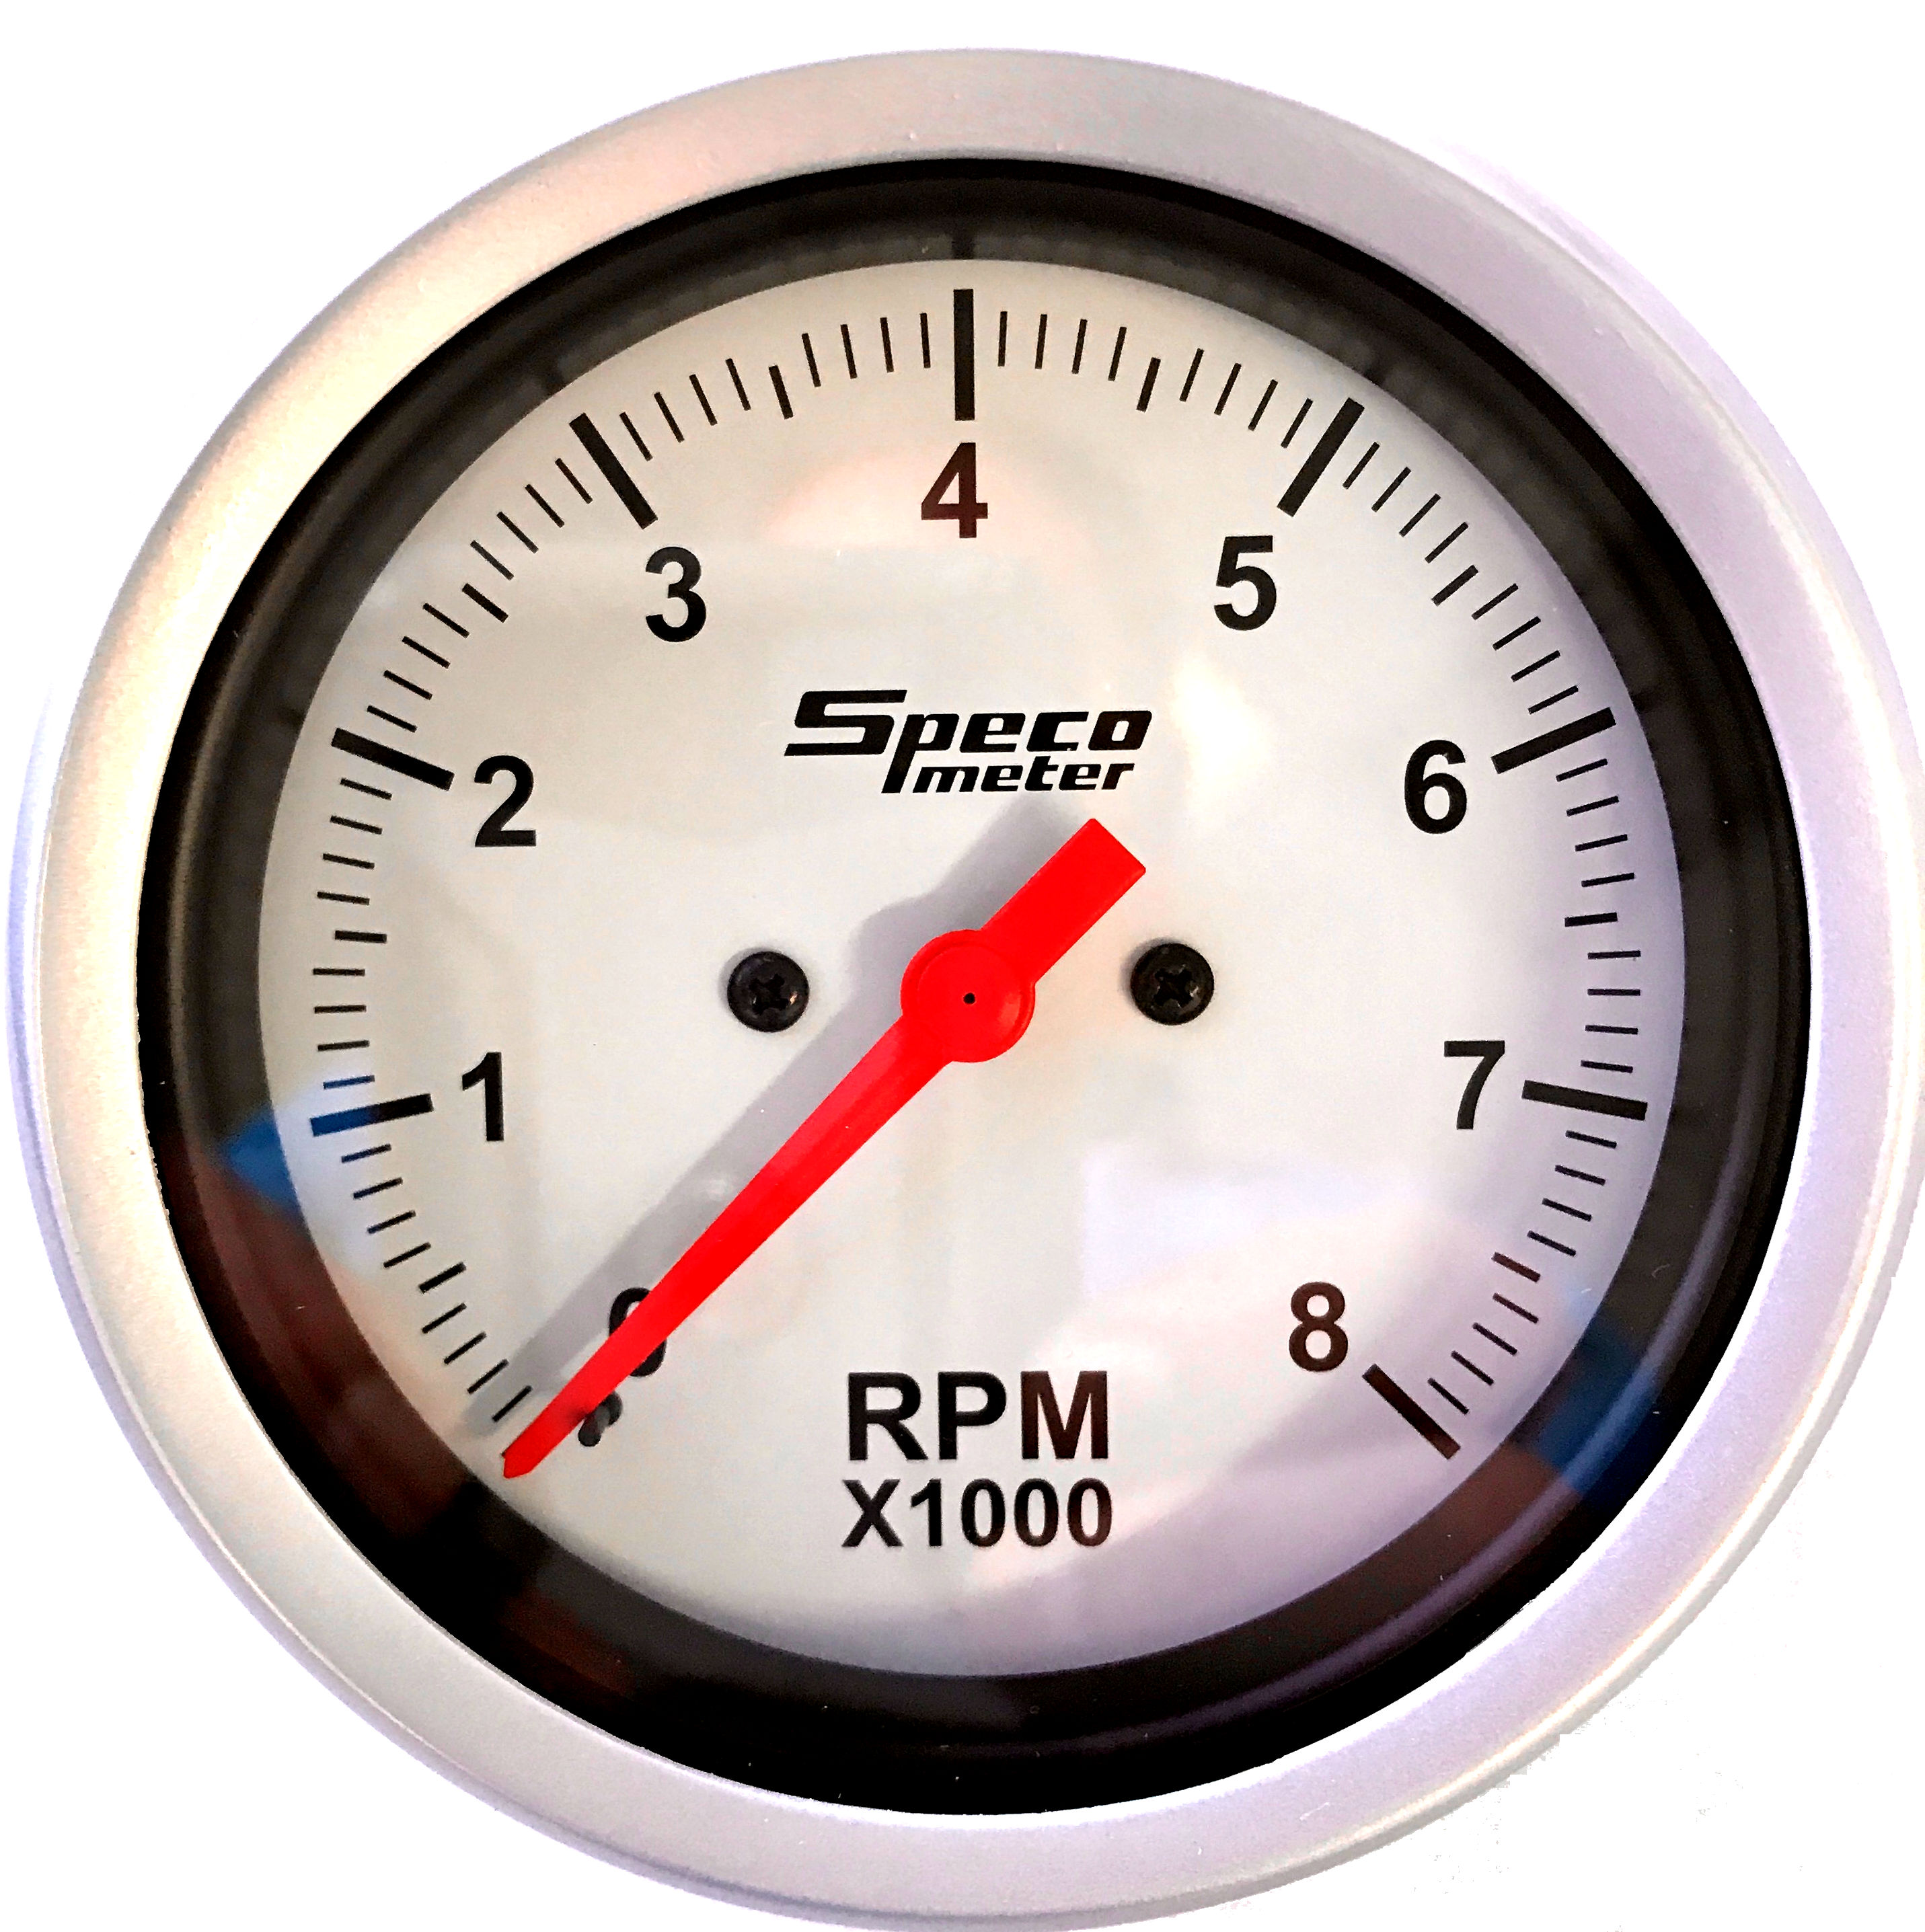 520-14 in-dash tachometer